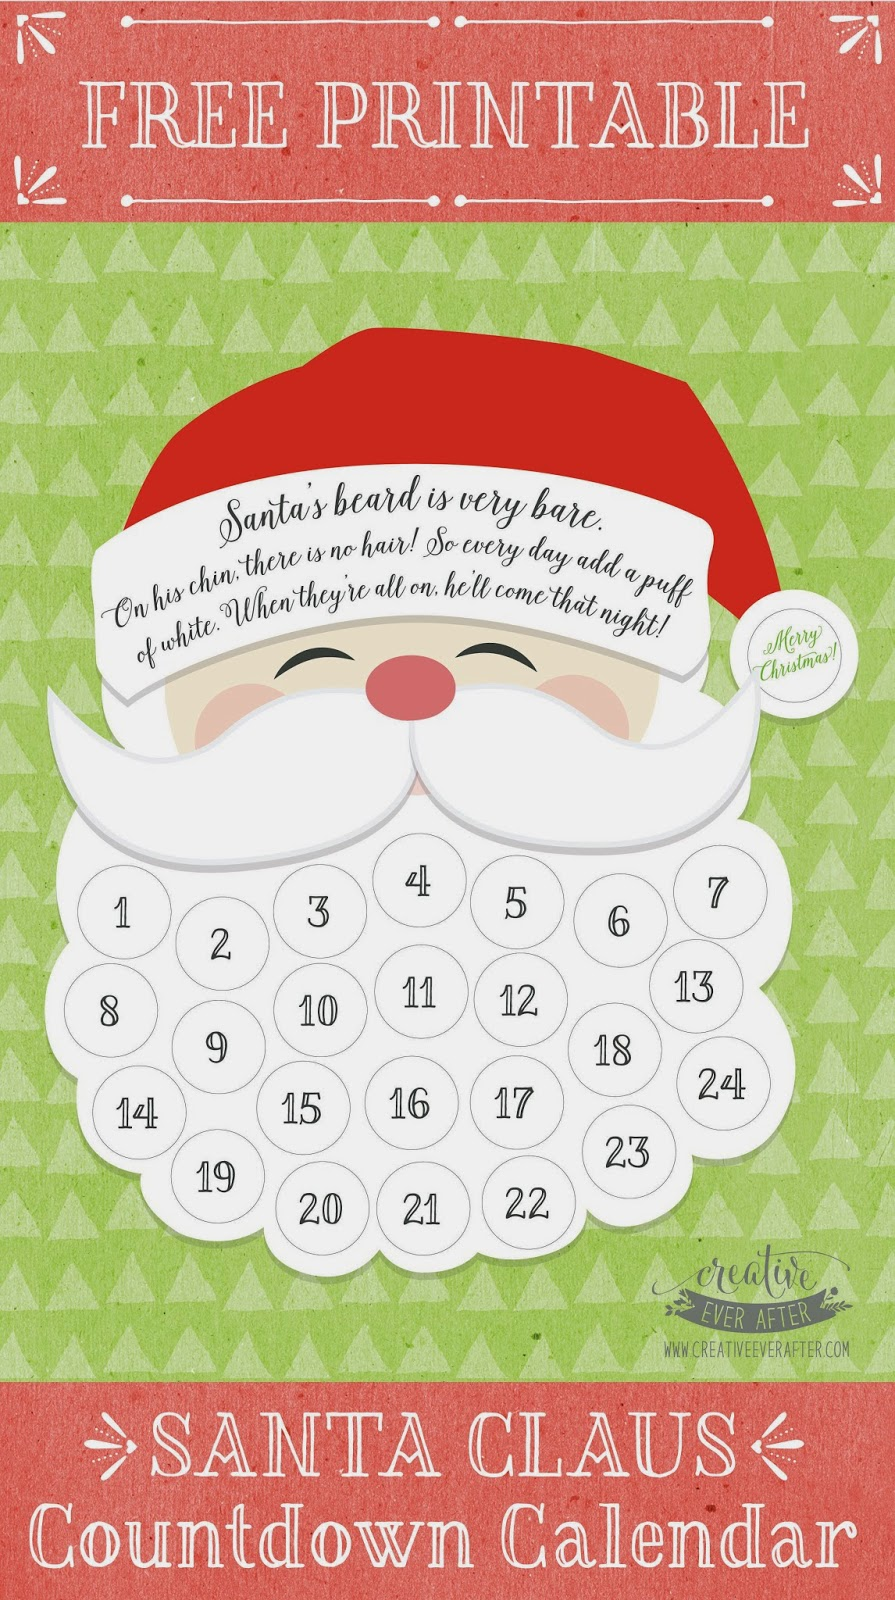 free printable santa claus beard countdown calendar creative ever after. Black Bedroom Furniture Sets. Home Design Ideas